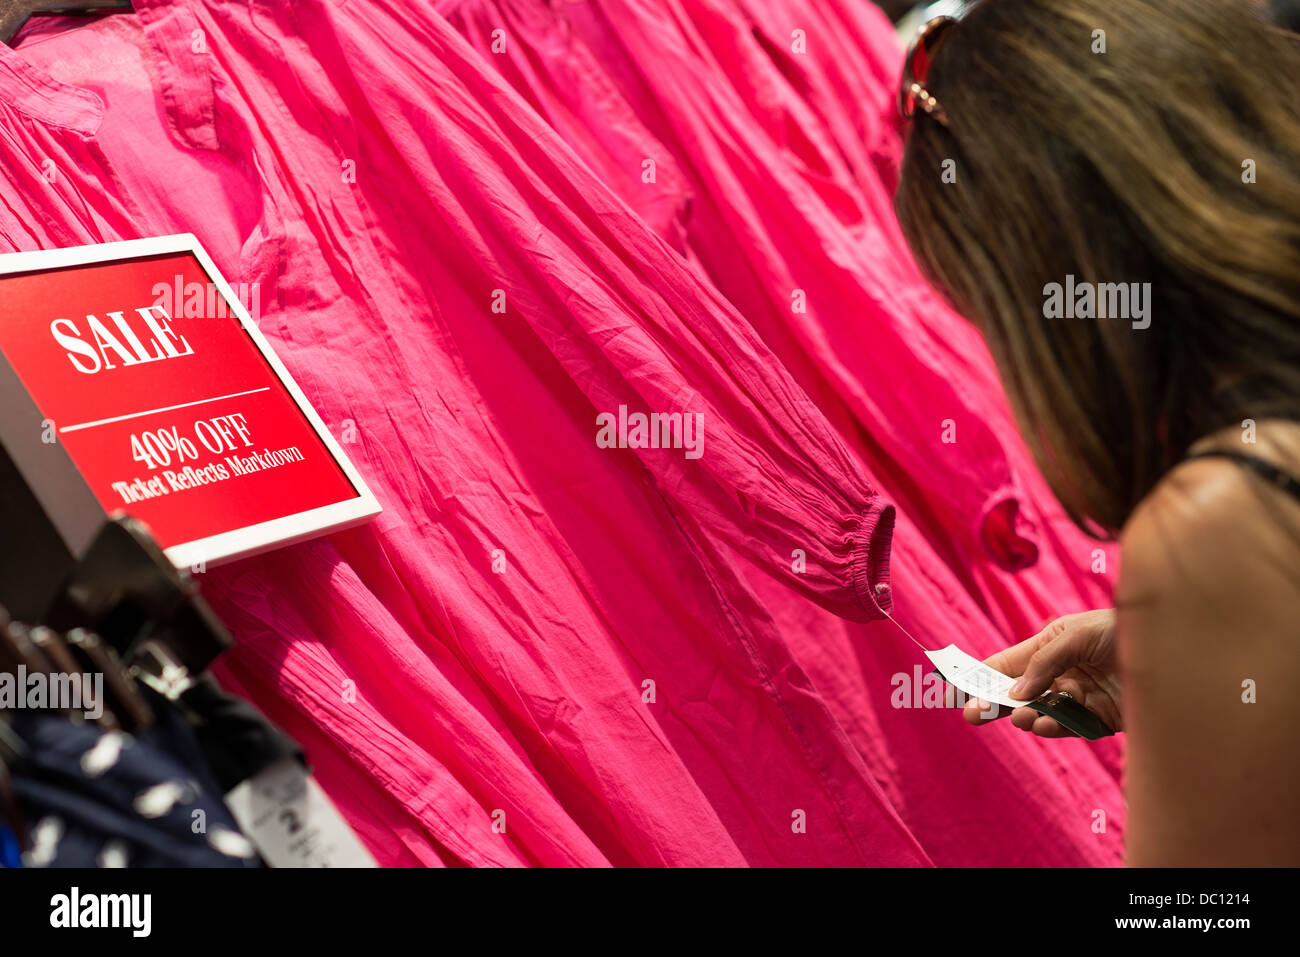 Woman bargain hunting in a clothing store. - Stock Image